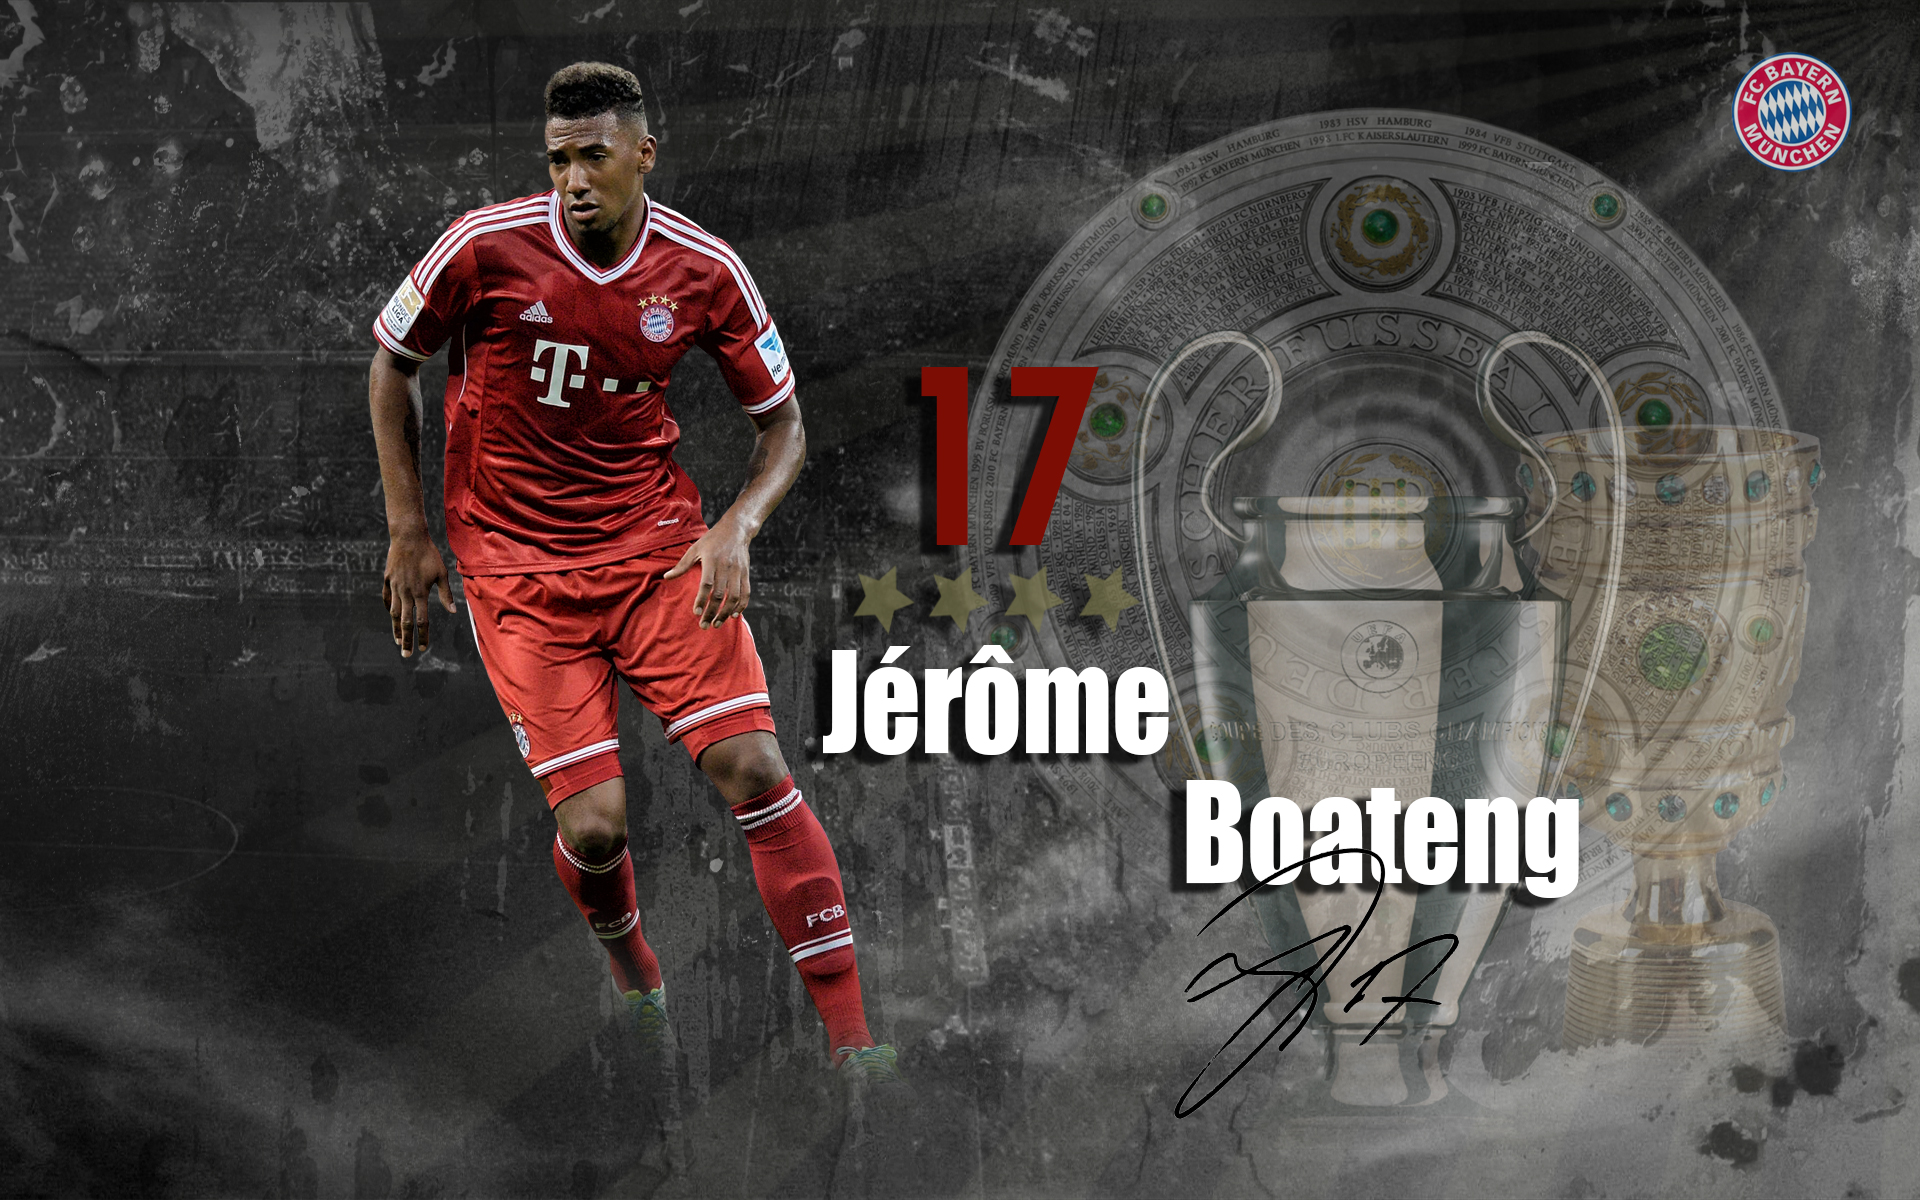 Jerome Boateng Football Wallpaper 1920x1200